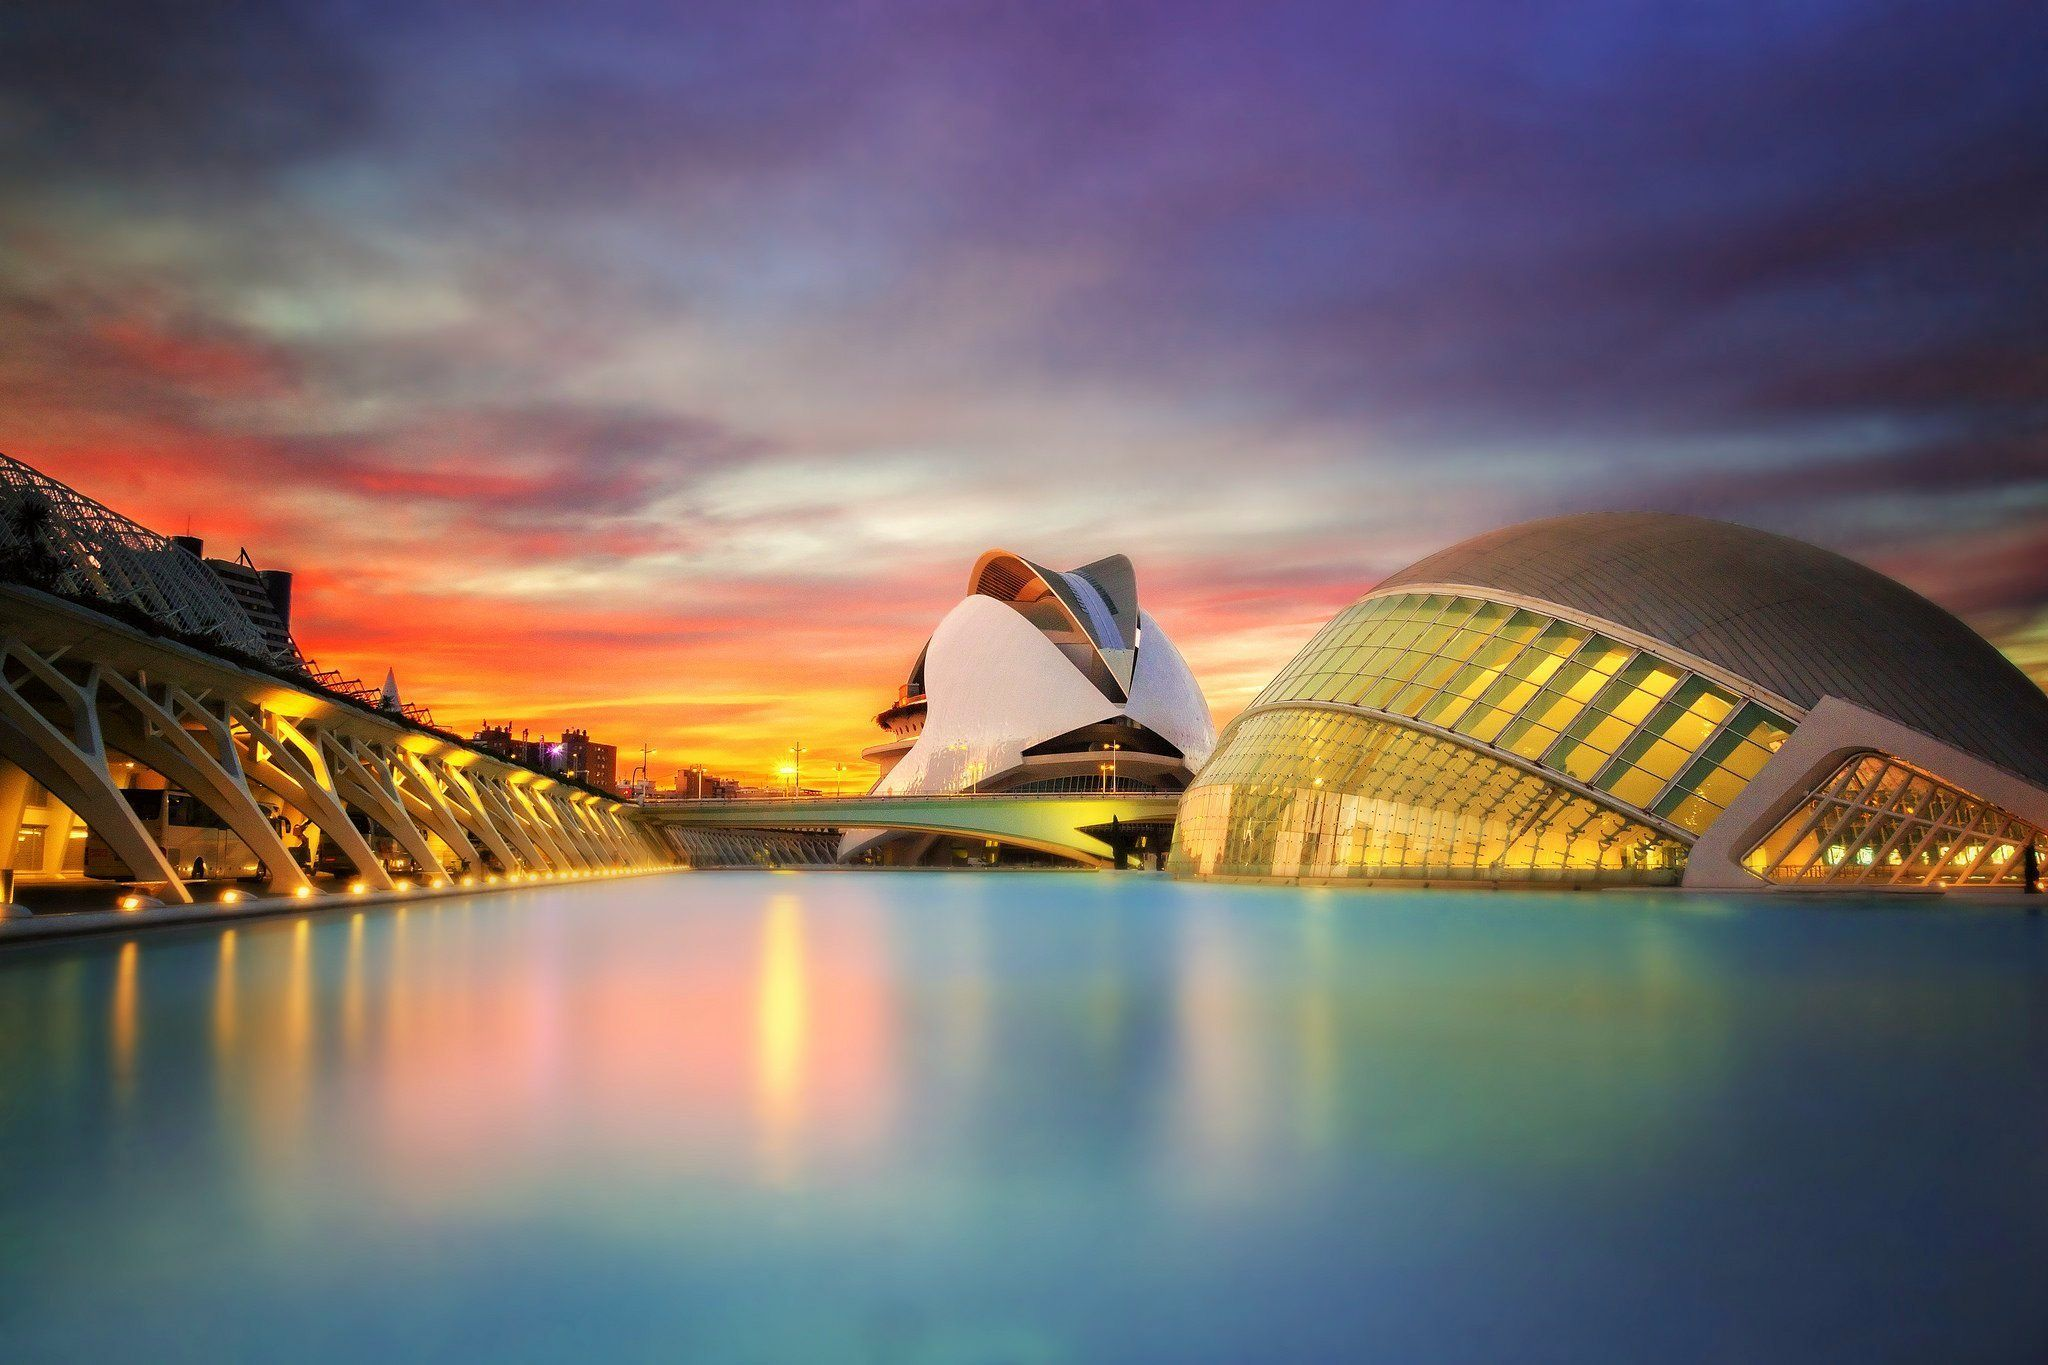 Valencia at sunset